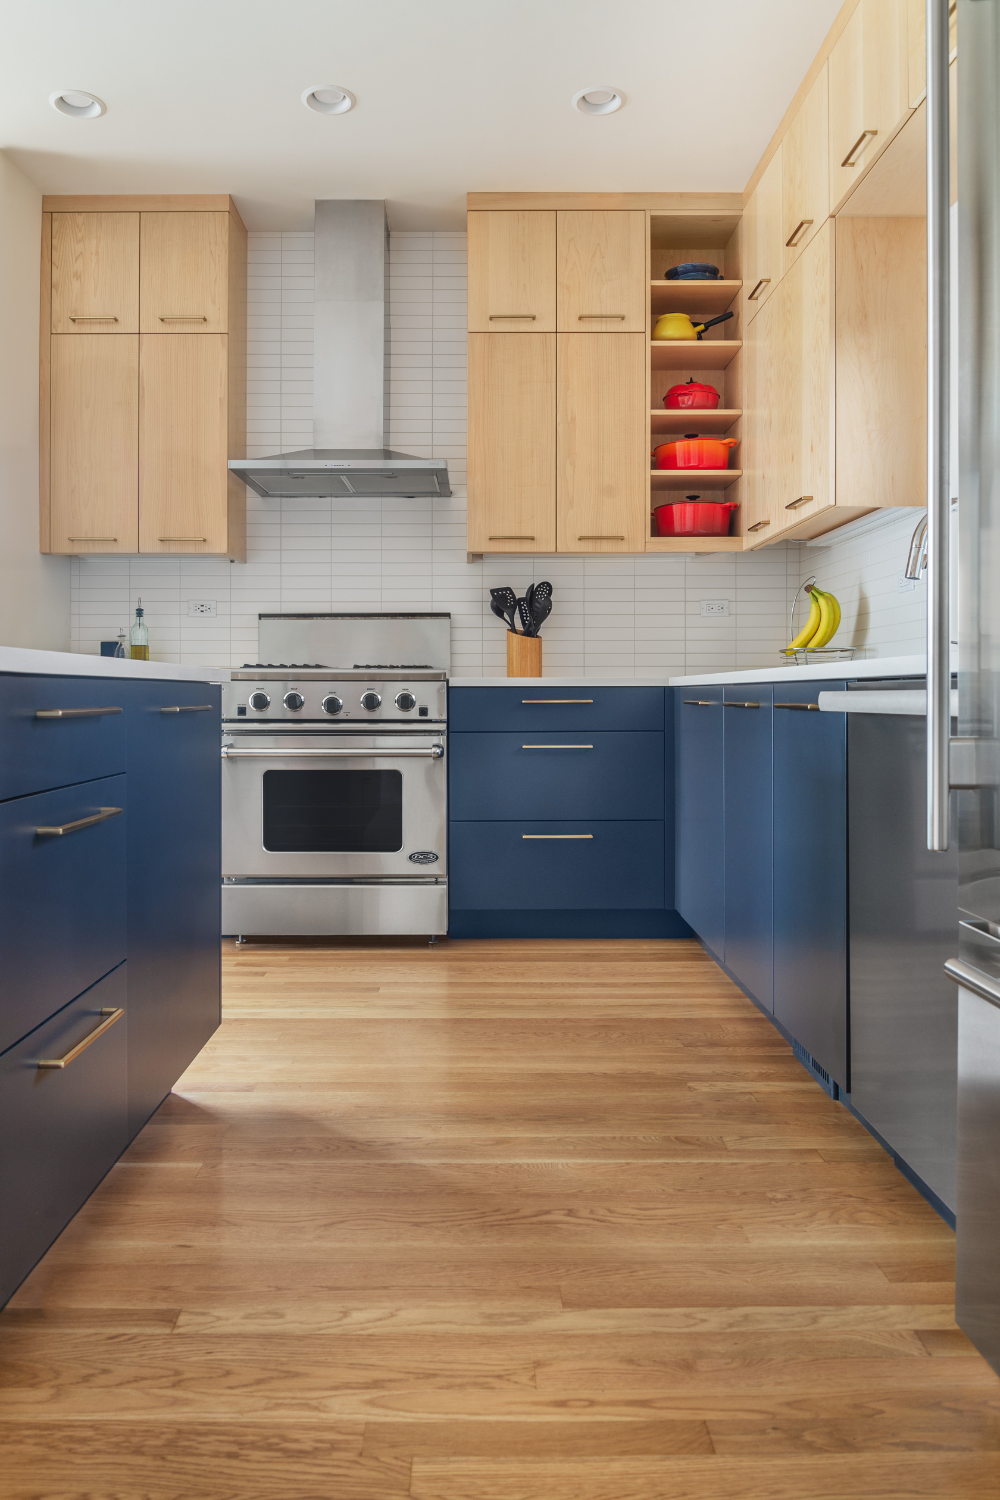 Color Blocked Kitchen Cabinets In 2020 Contemporary Kitchen Cabinets Contemporary Kitchen Kitchen Remodel